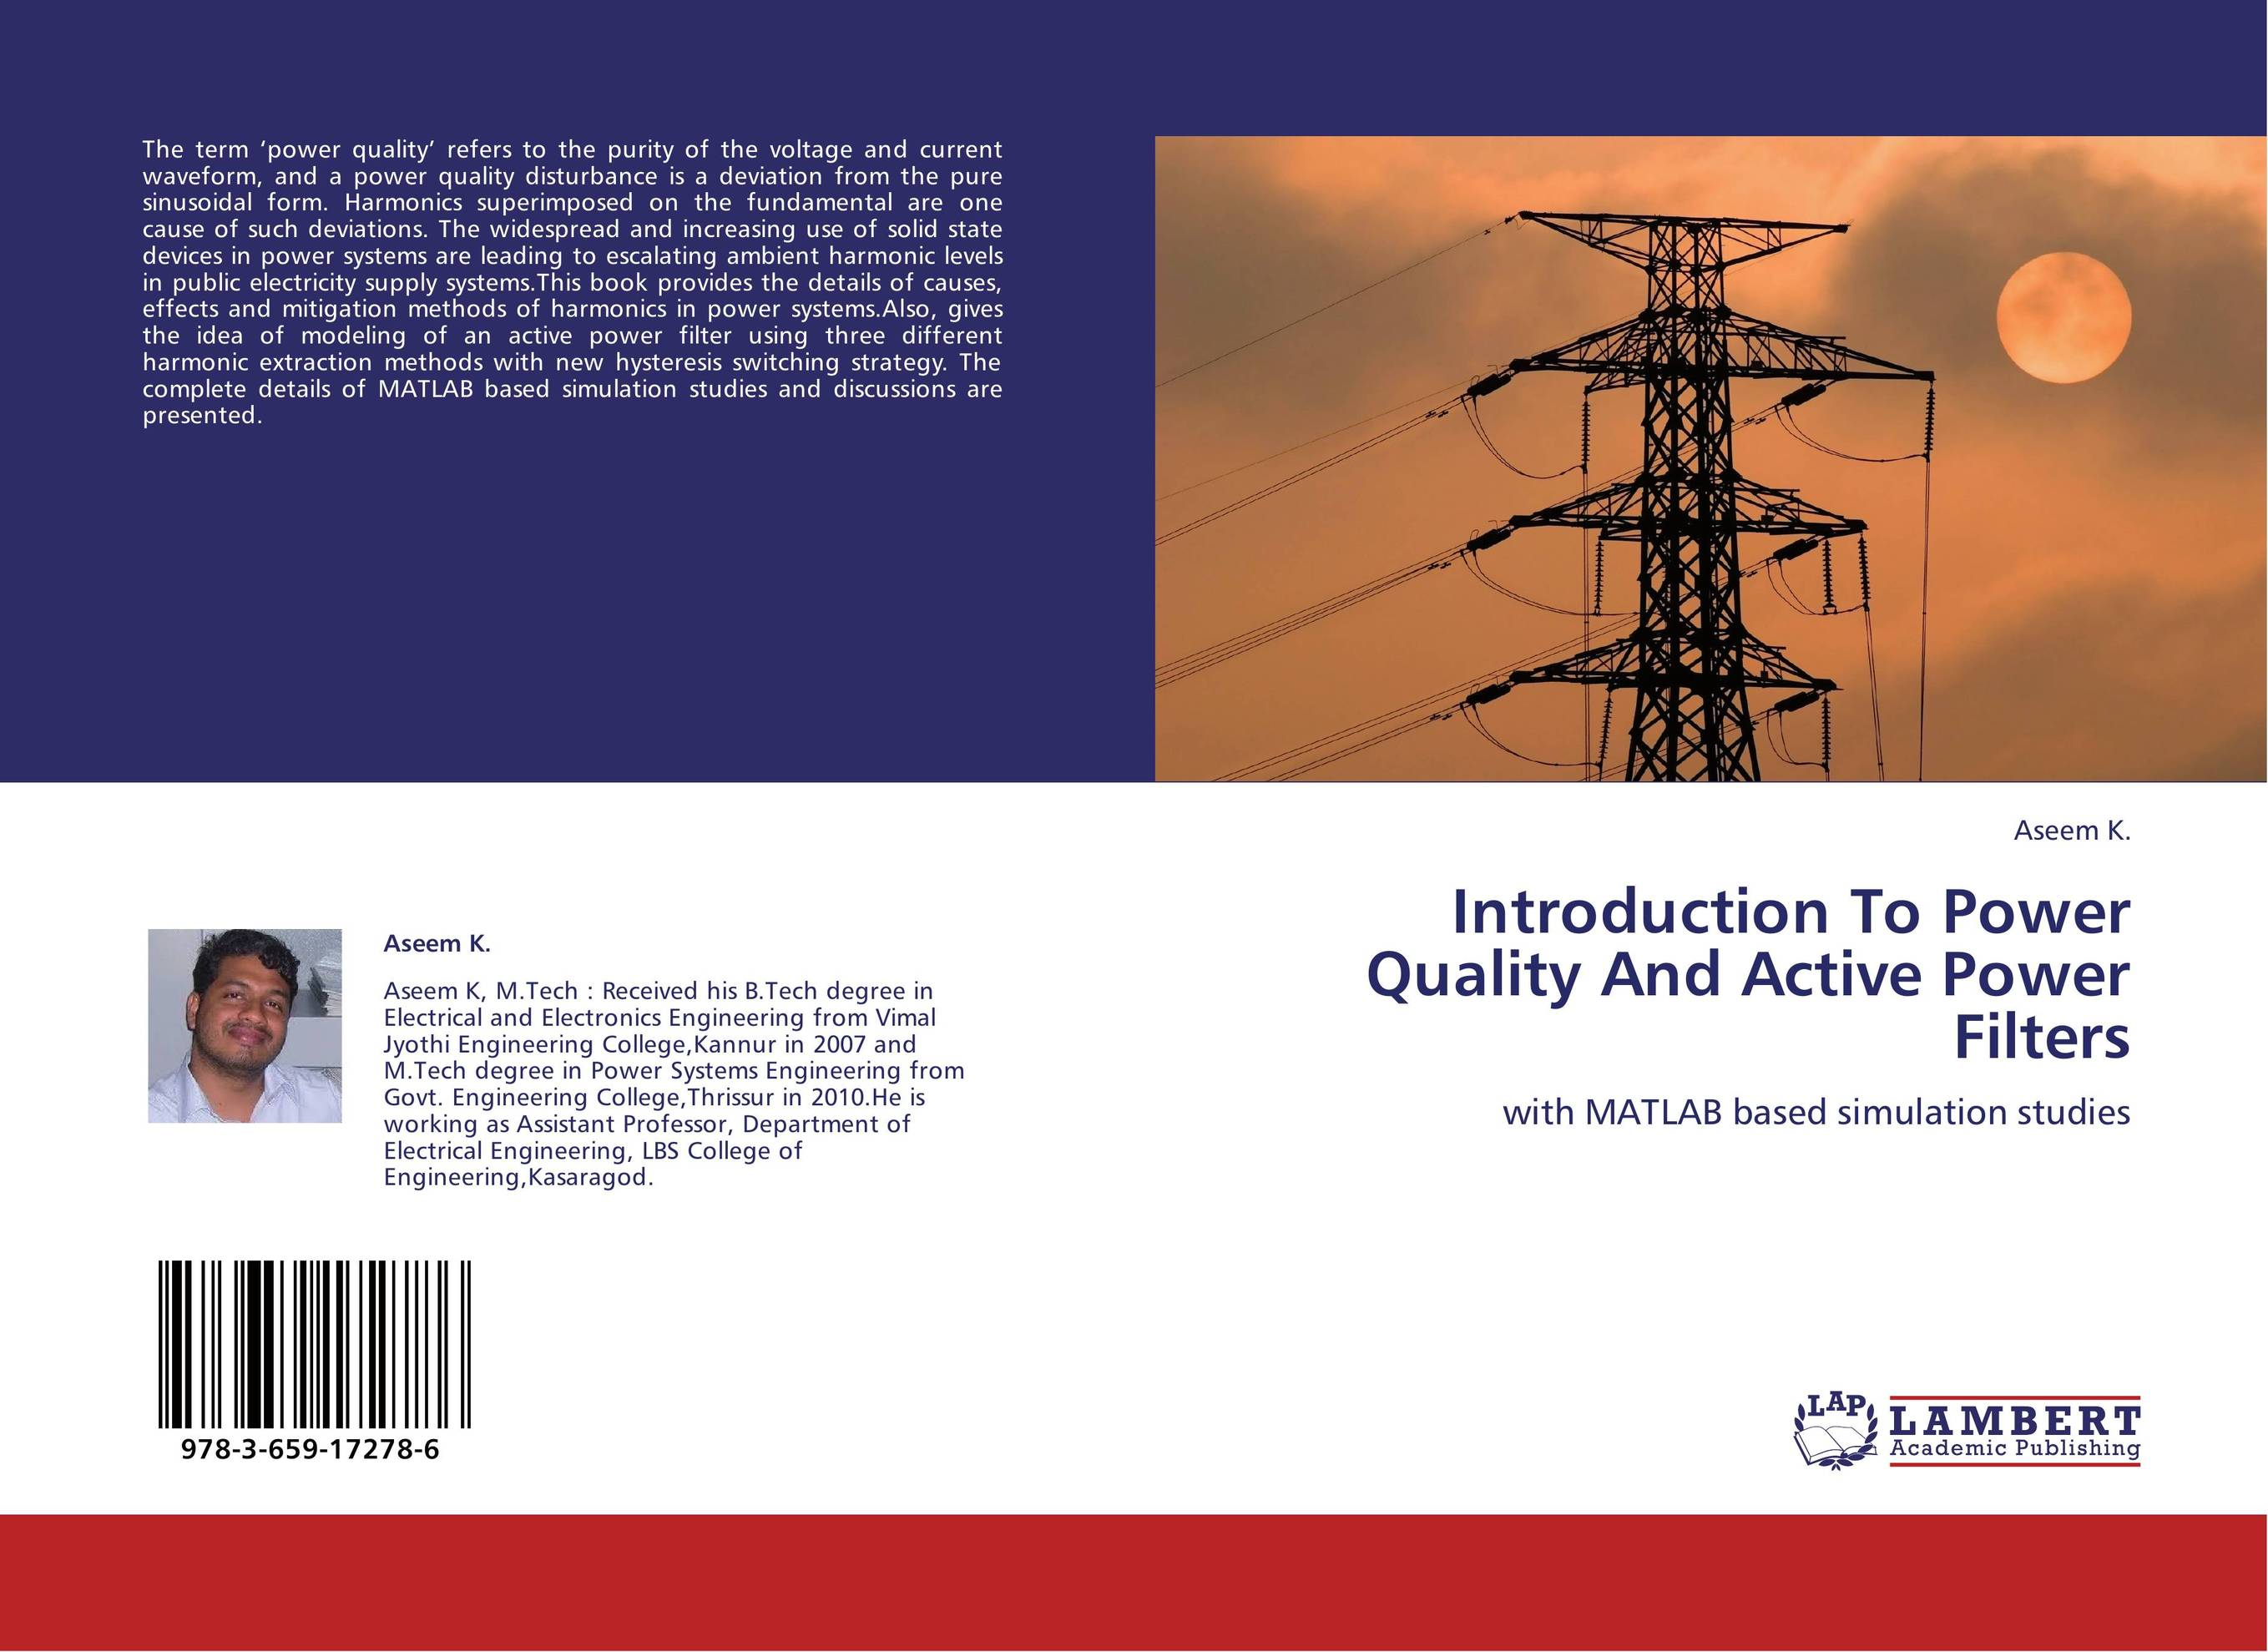 introduction to power engineering Start studying chapter 1 - introduction to power engineering learn vocabulary, terms, and more with flashcards, games, and other study tools.